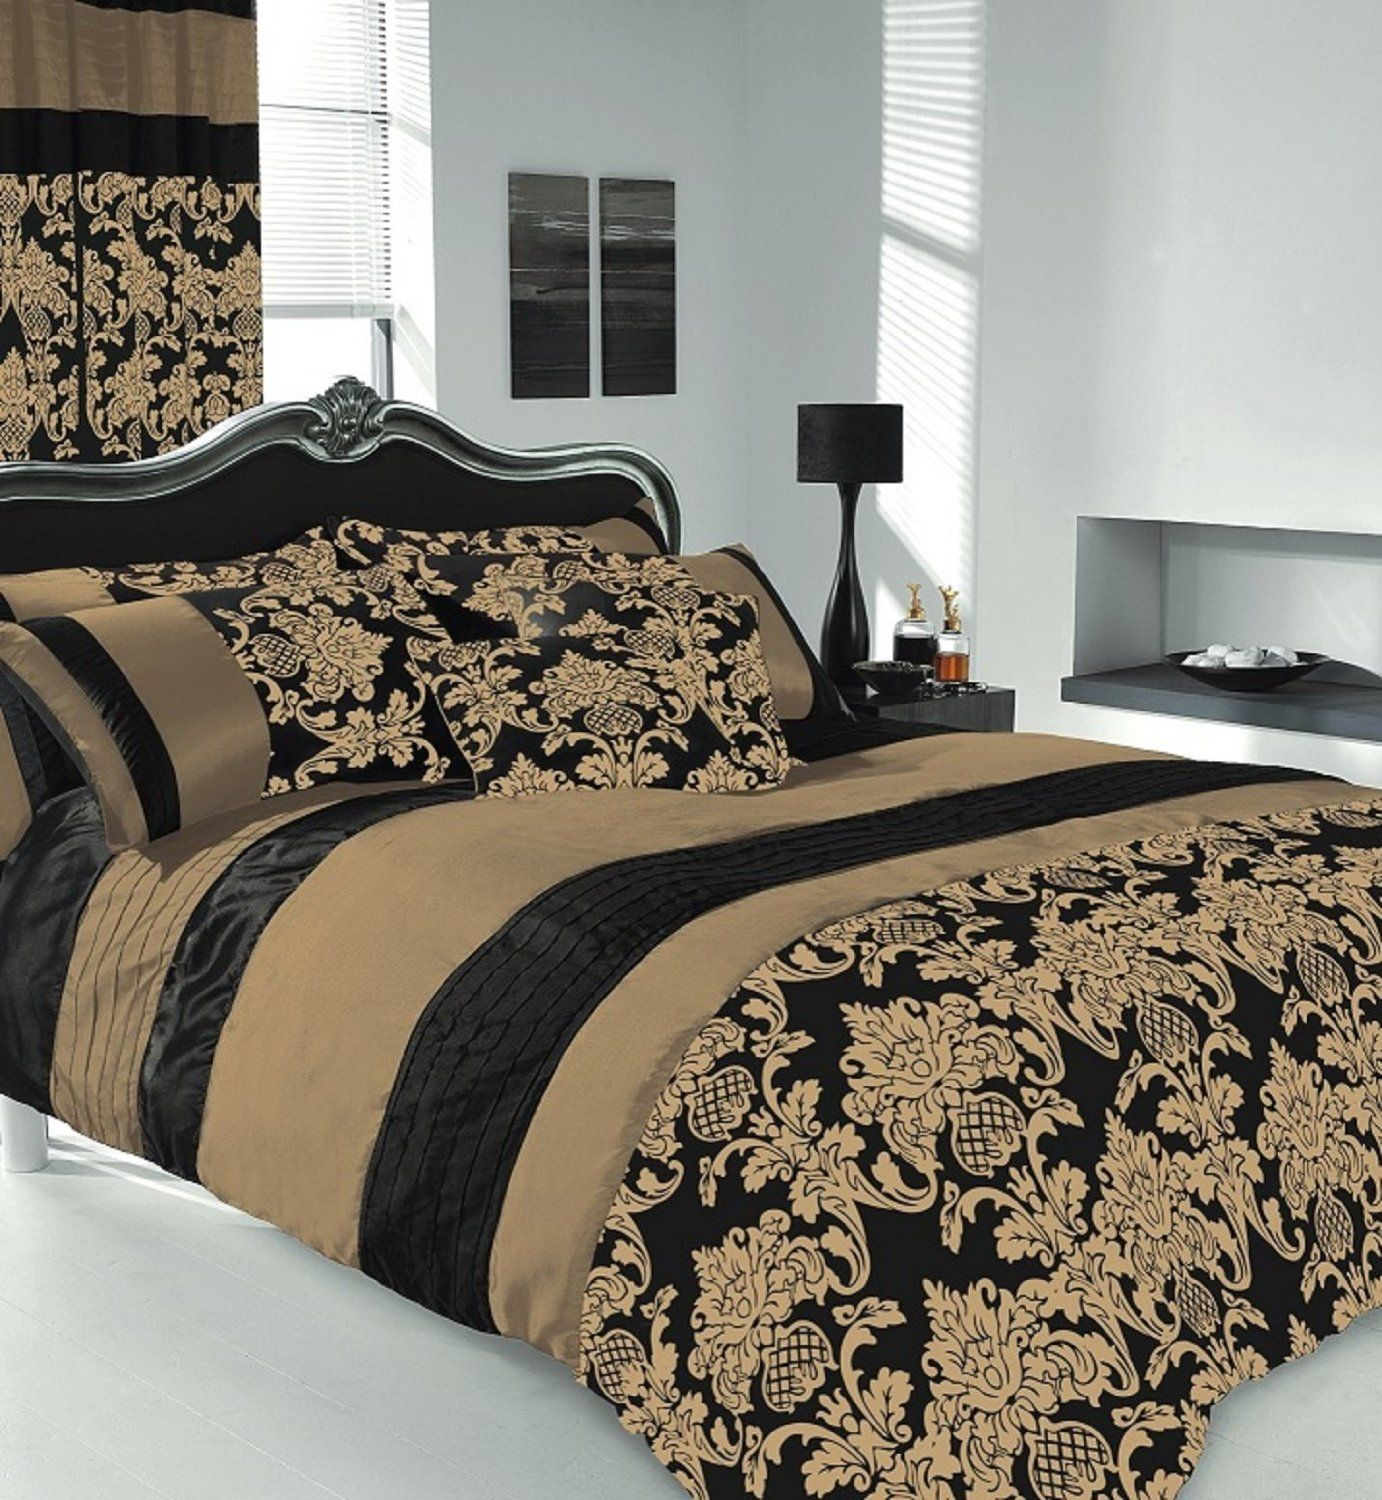 Apachi King Size Duvet Cover Bedding Set